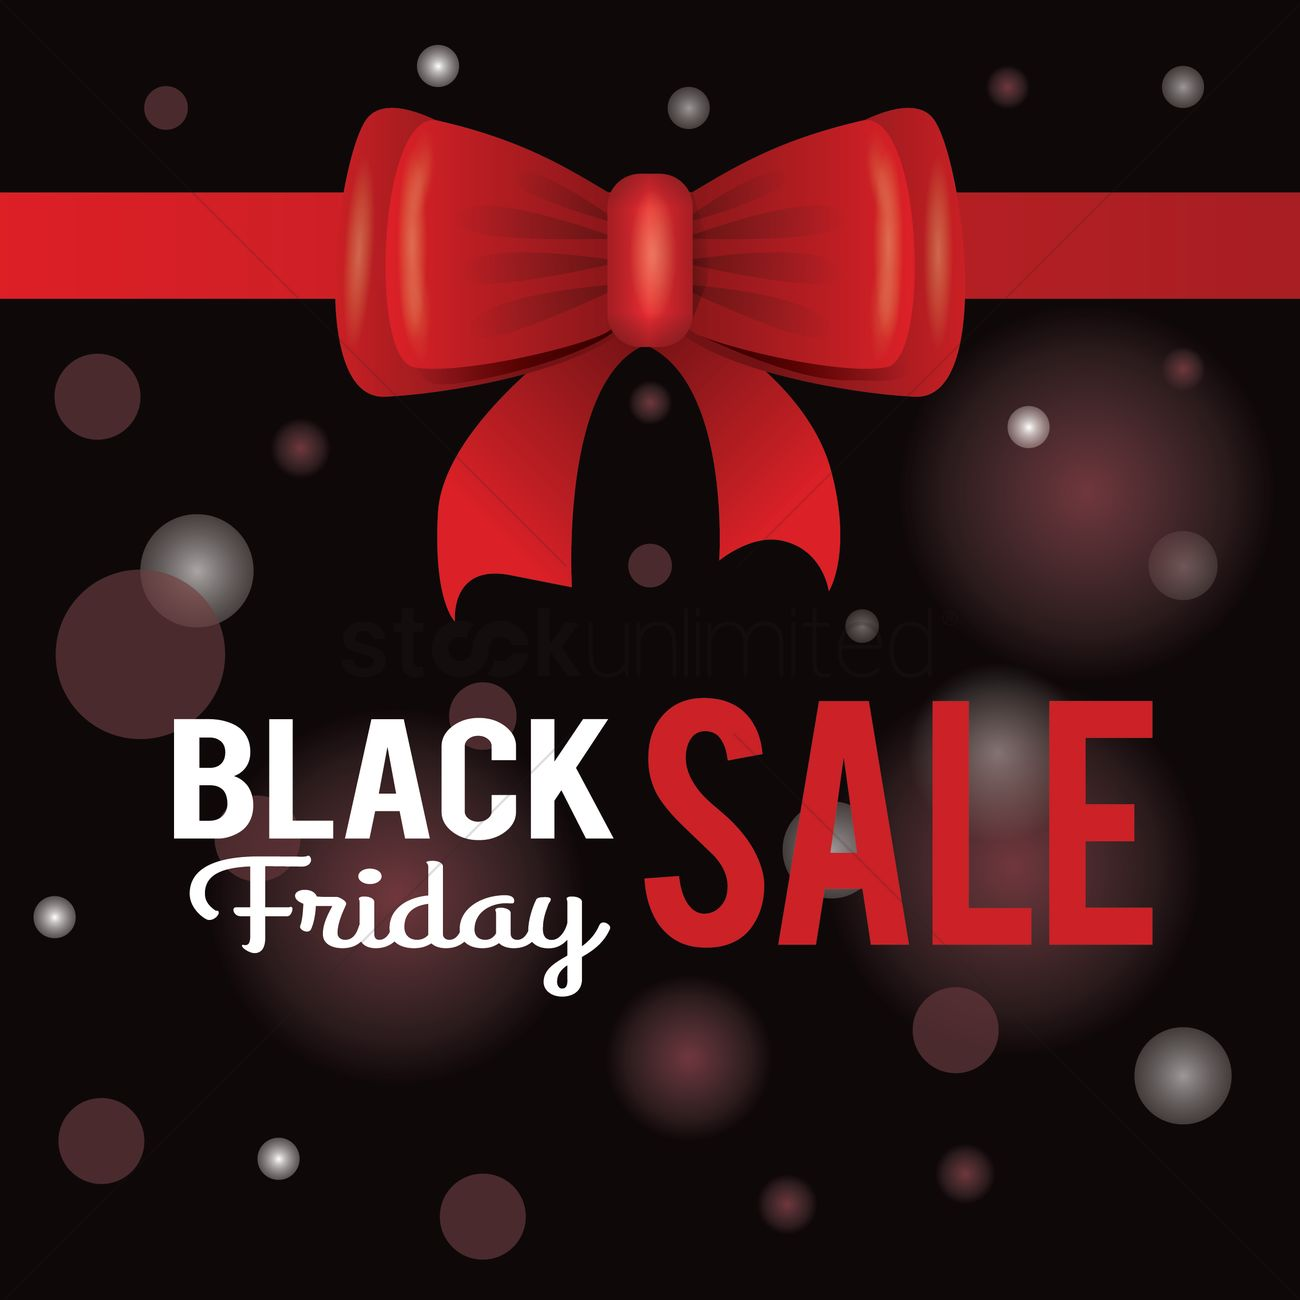 Black friday sale wallpaper Vector Image   1583203 StockUnlimited 1300x1300